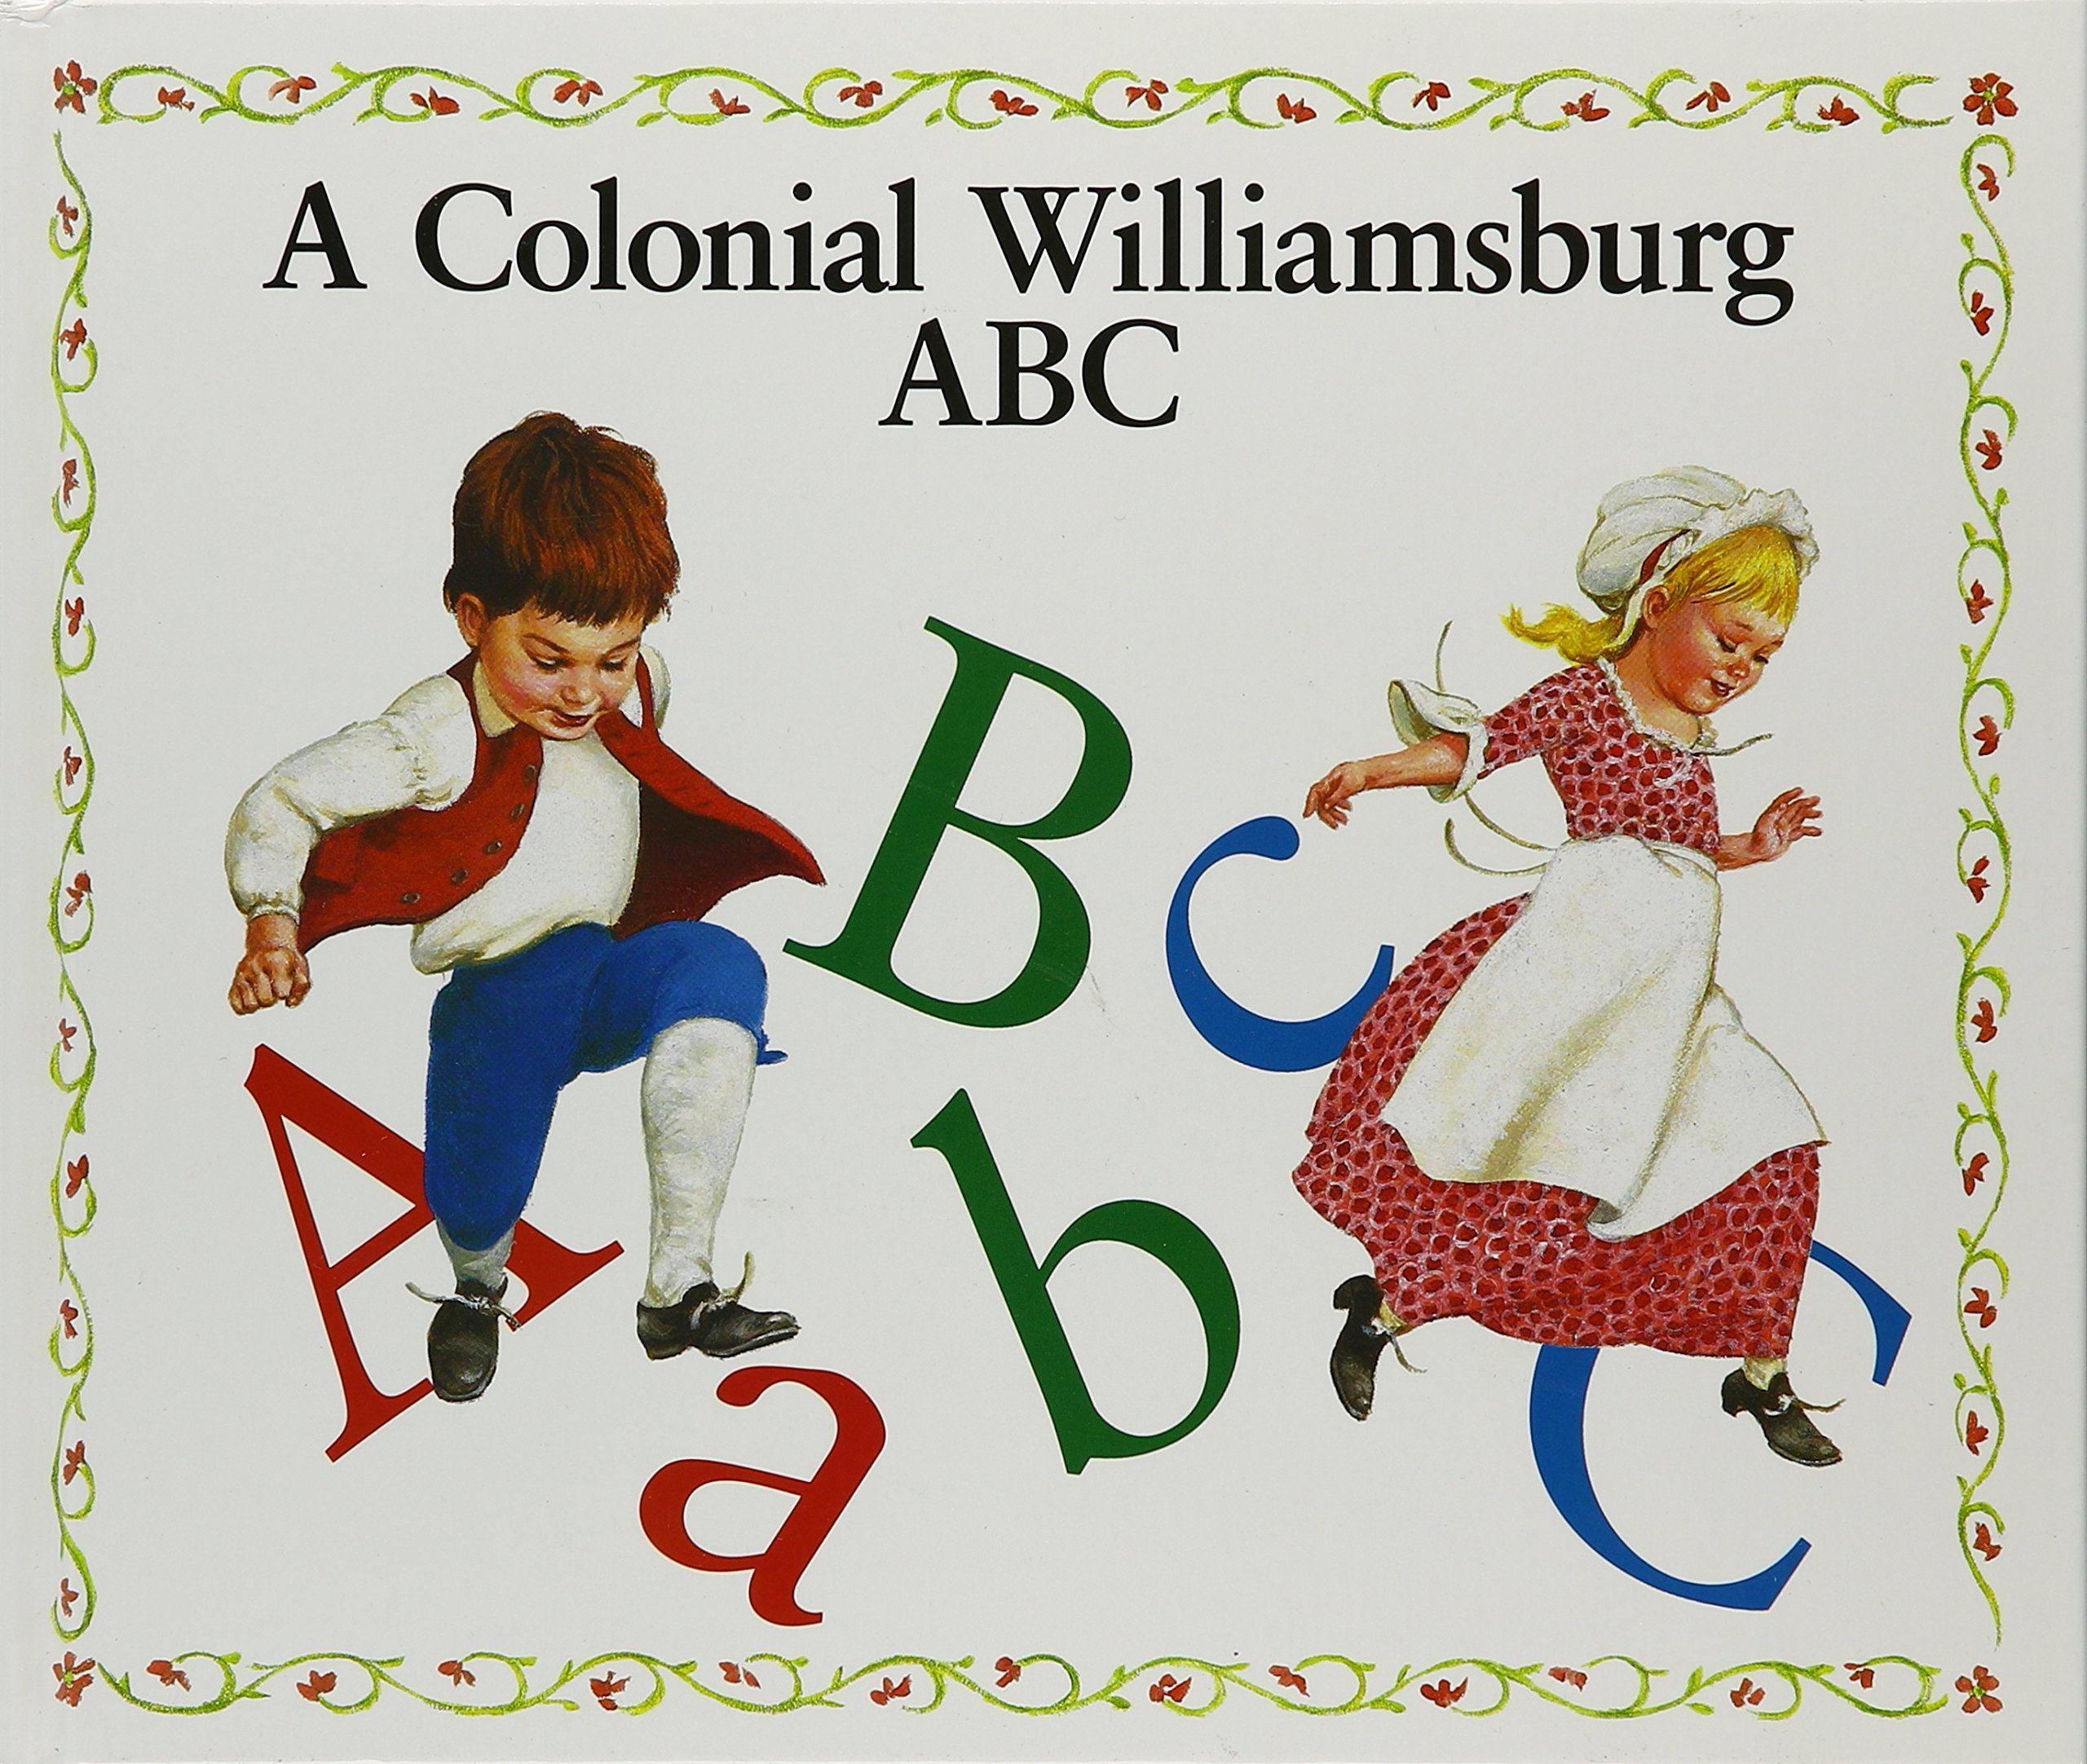 Colonial williamsburg clipart graphic stock A Colonial Williamsburg ABC: Amy Z. Watson, Louis S. Glanzman, The ... graphic stock